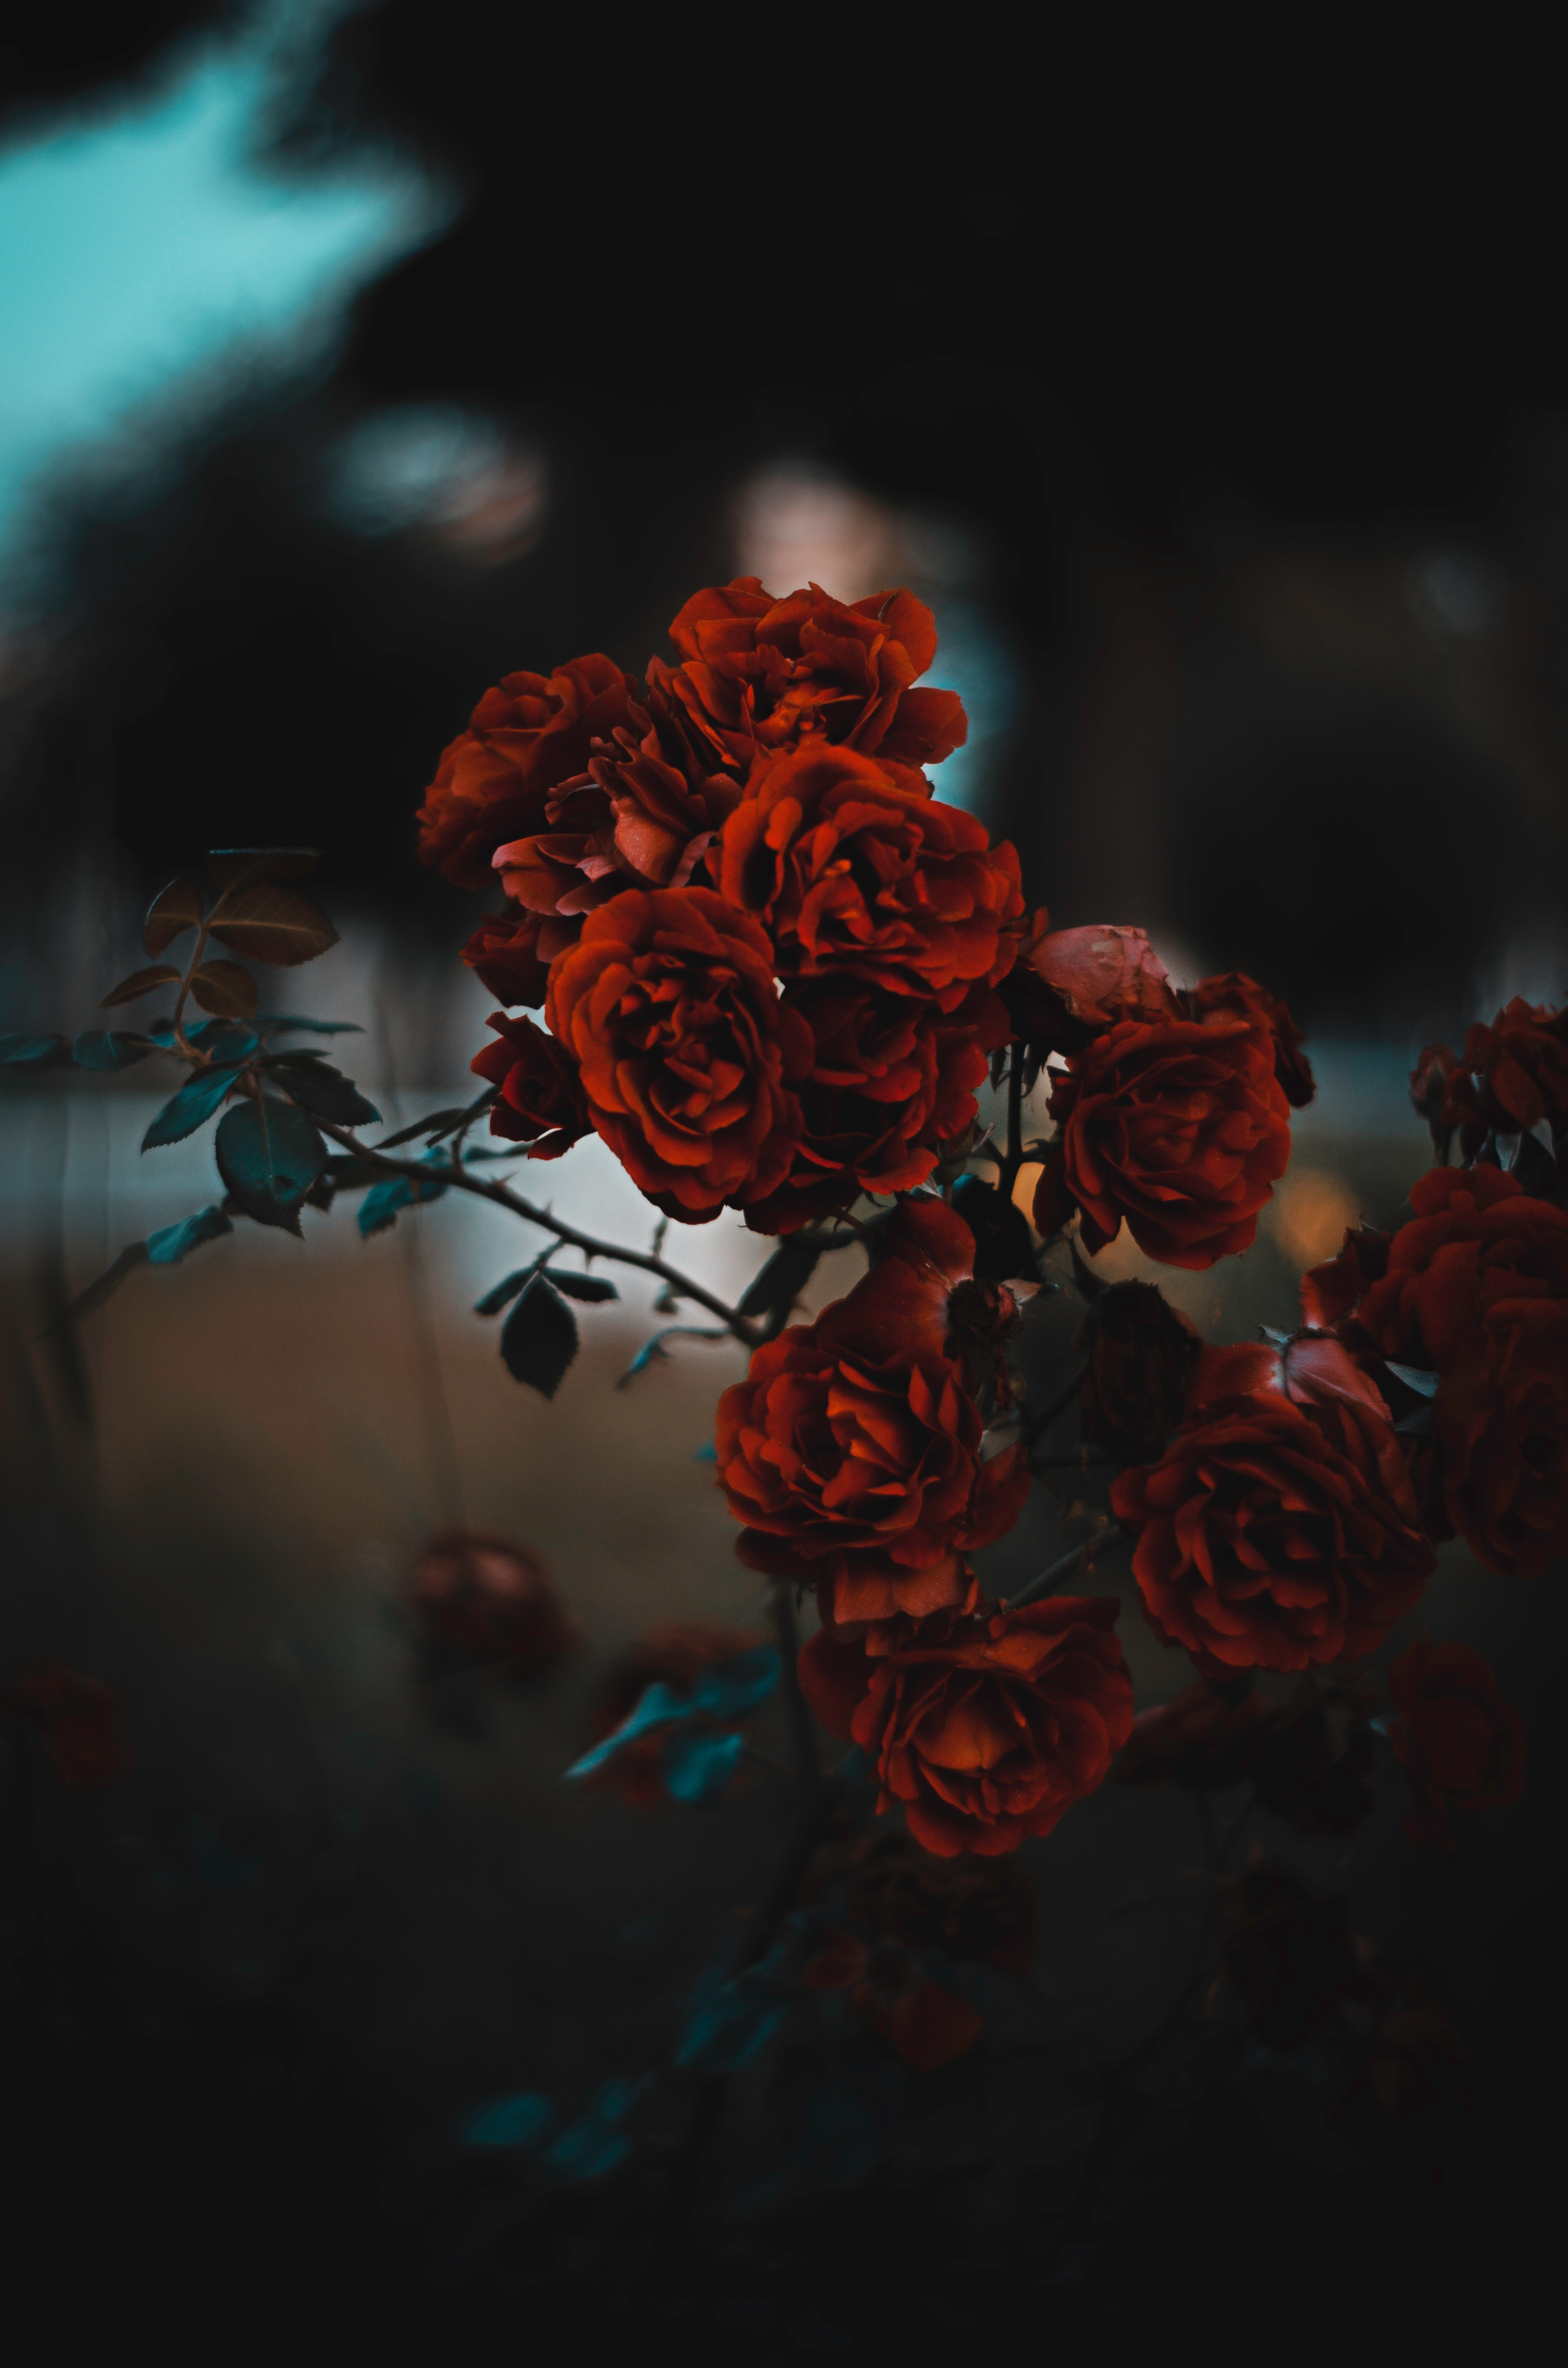 119725 download wallpaper Flowers, Bush, Blur, Smooth, Scarlet, Roses screensavers and pictures for free